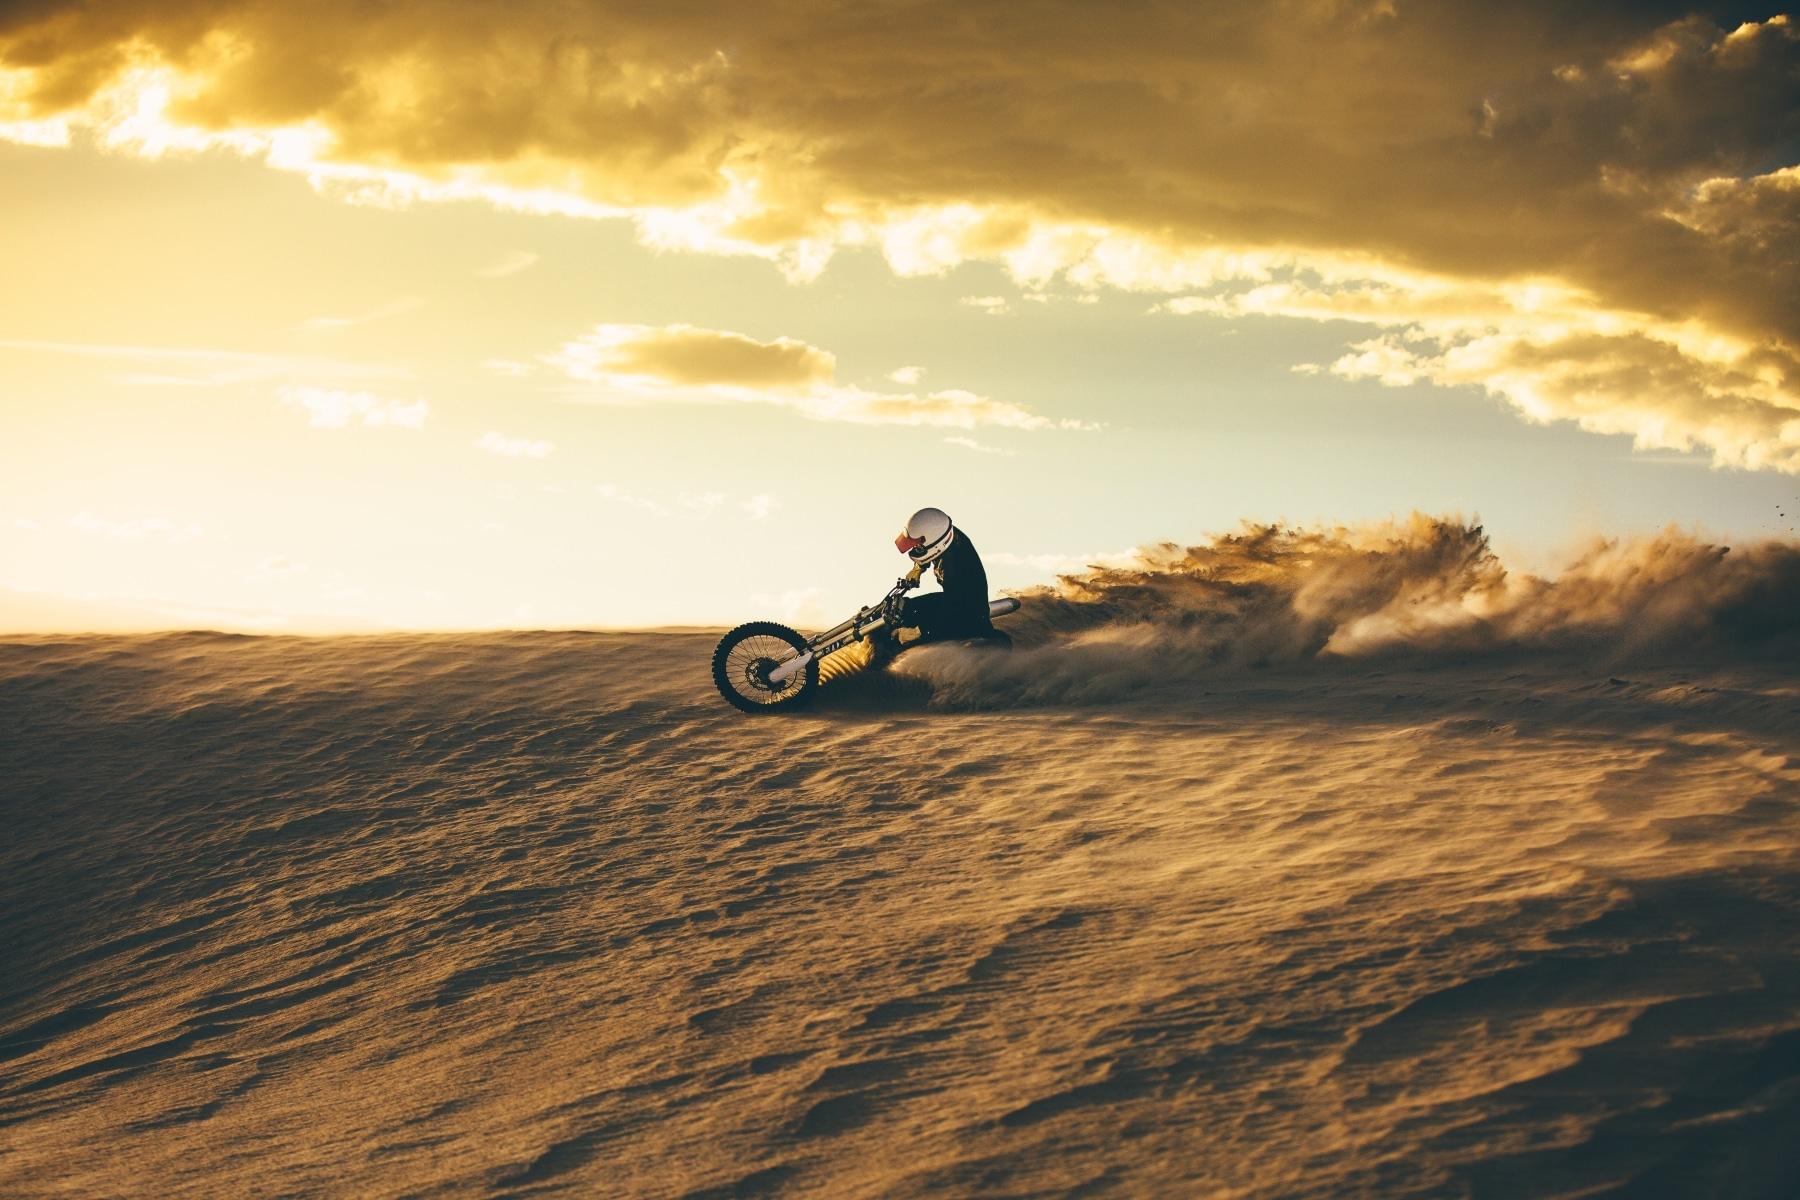 tested saint's motorbike in the dust